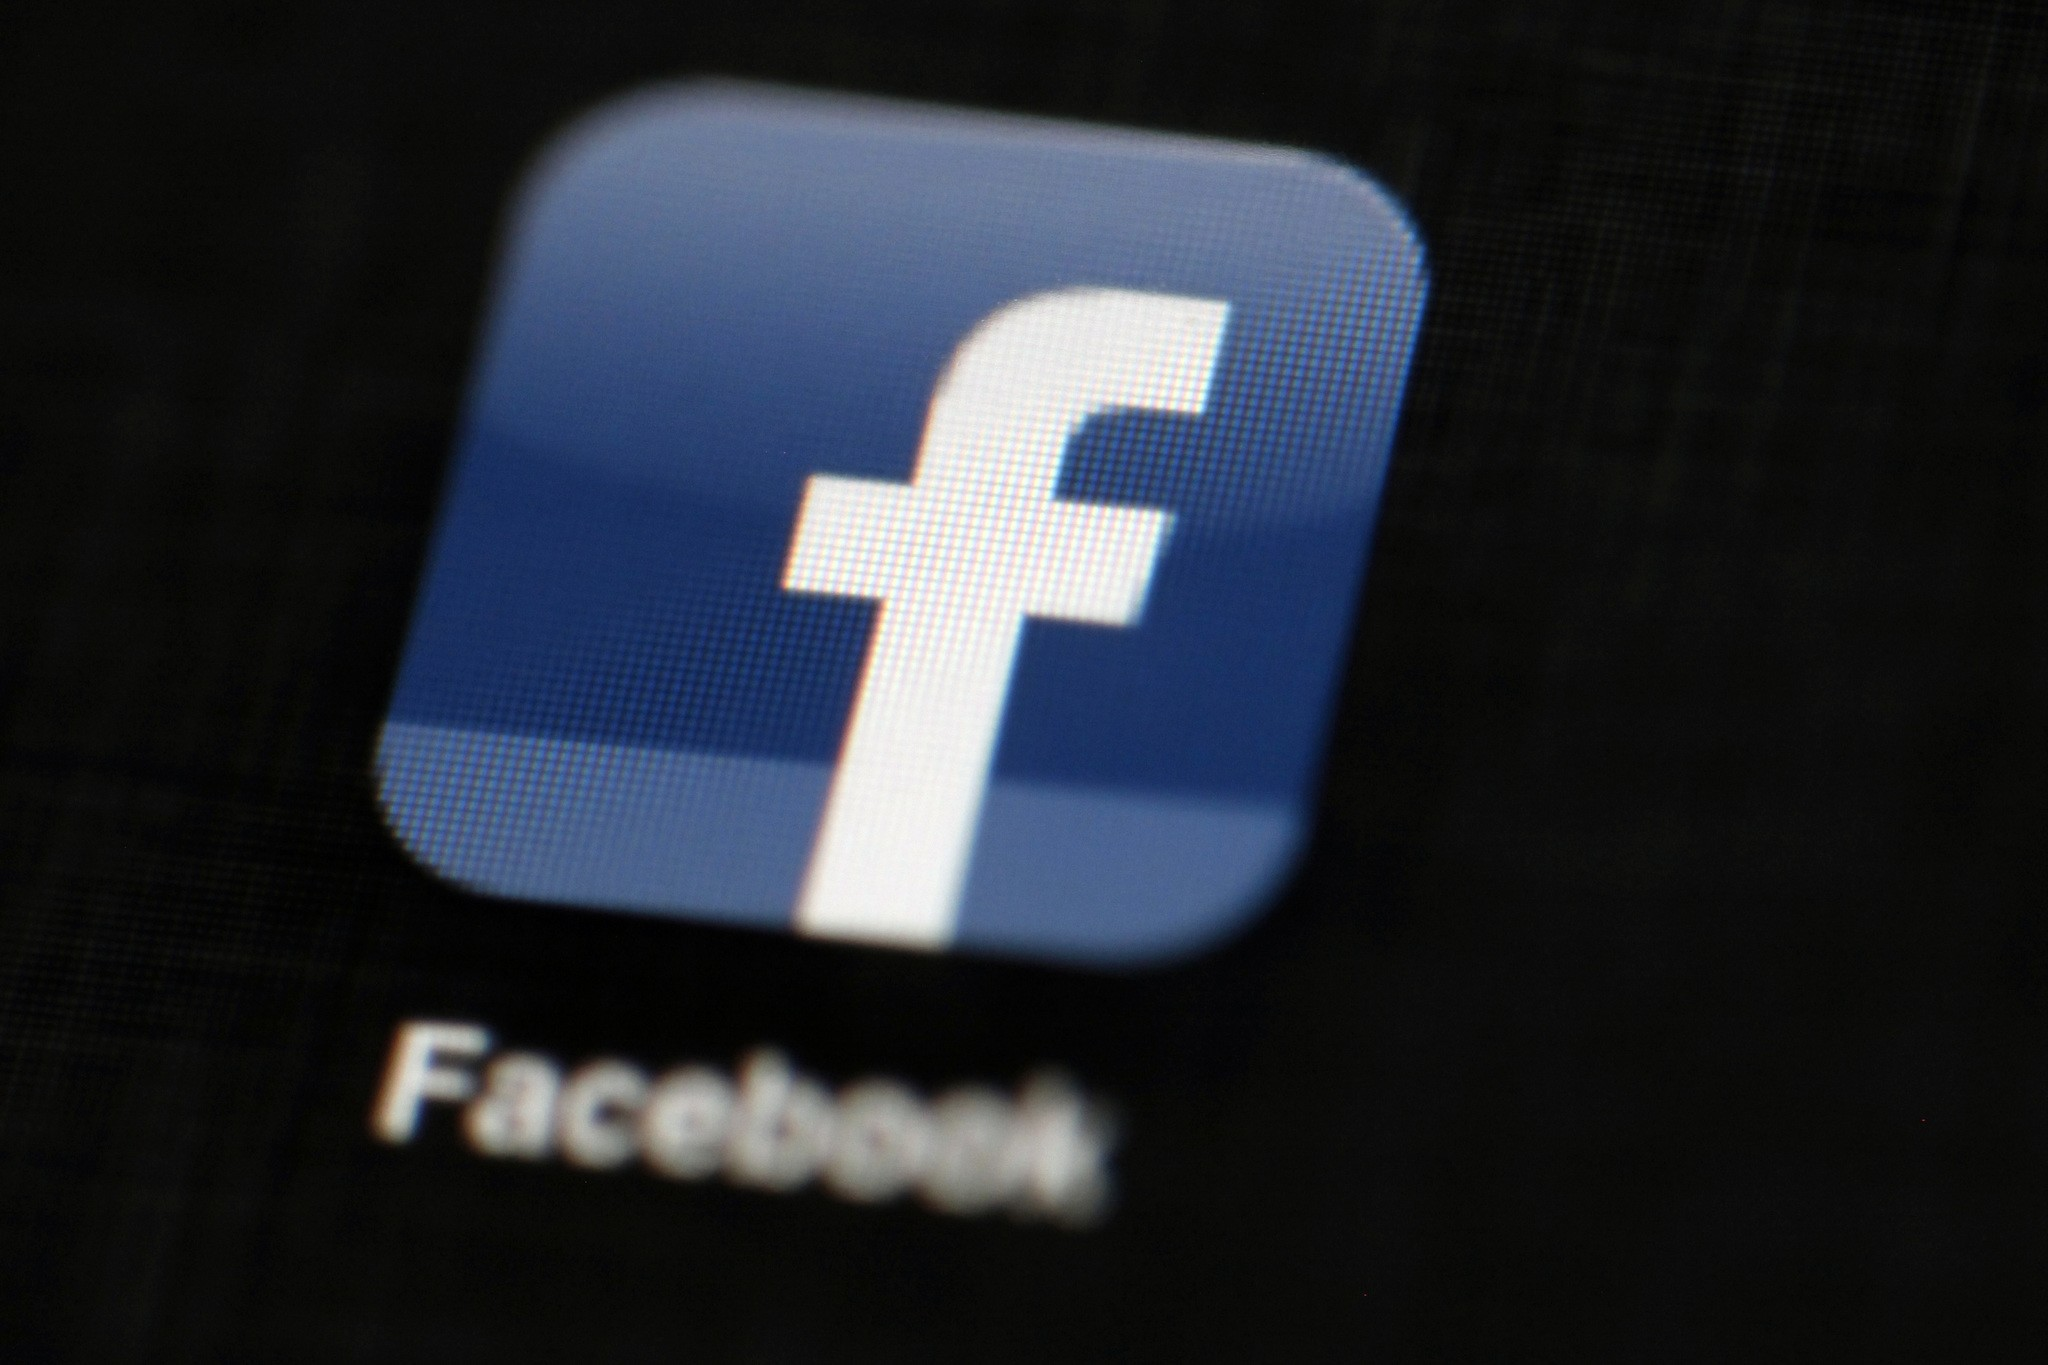 In this May 16, 2012, file photo, the Facebook logo is displayed on an iPad in Philadelphia. (AP Photo)